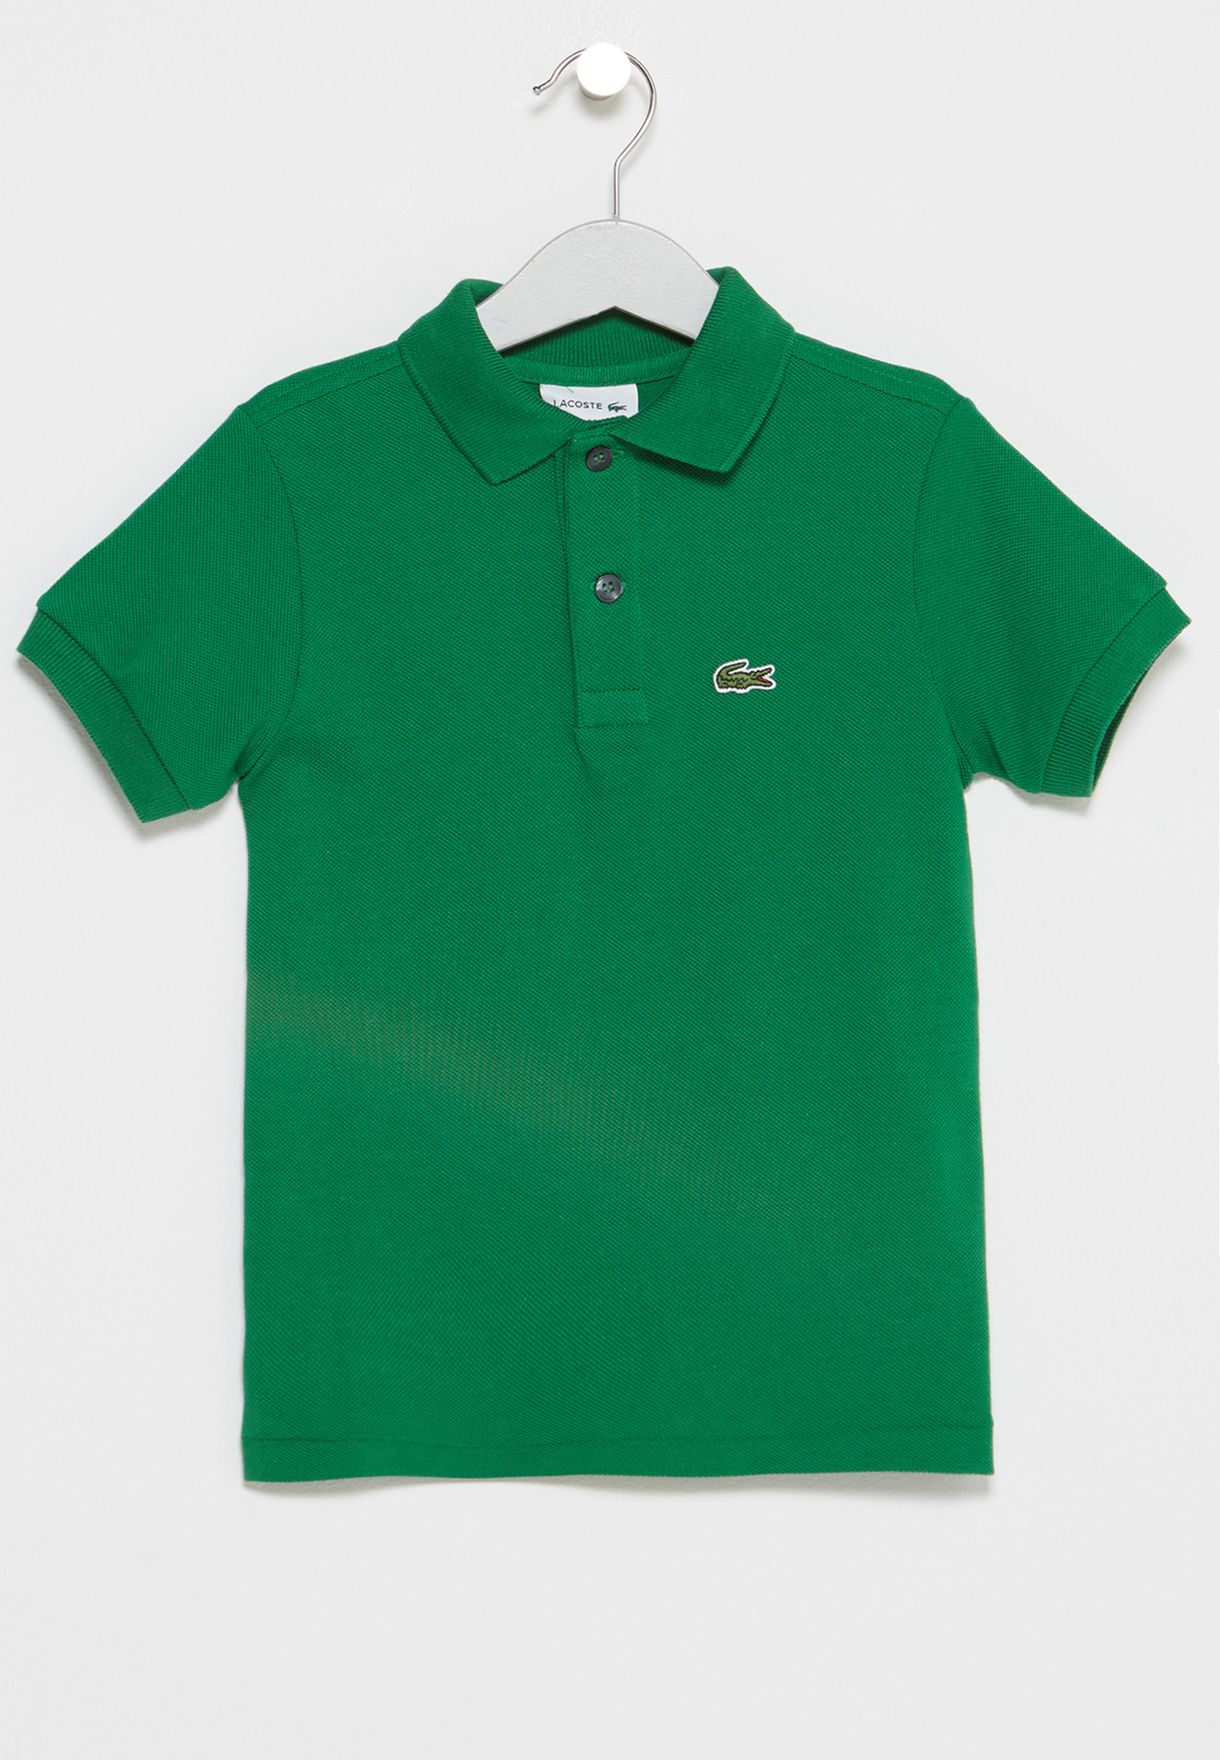 1b901856d Cheap Childrens Lacoste Polo Shirts - Cotswold Hire